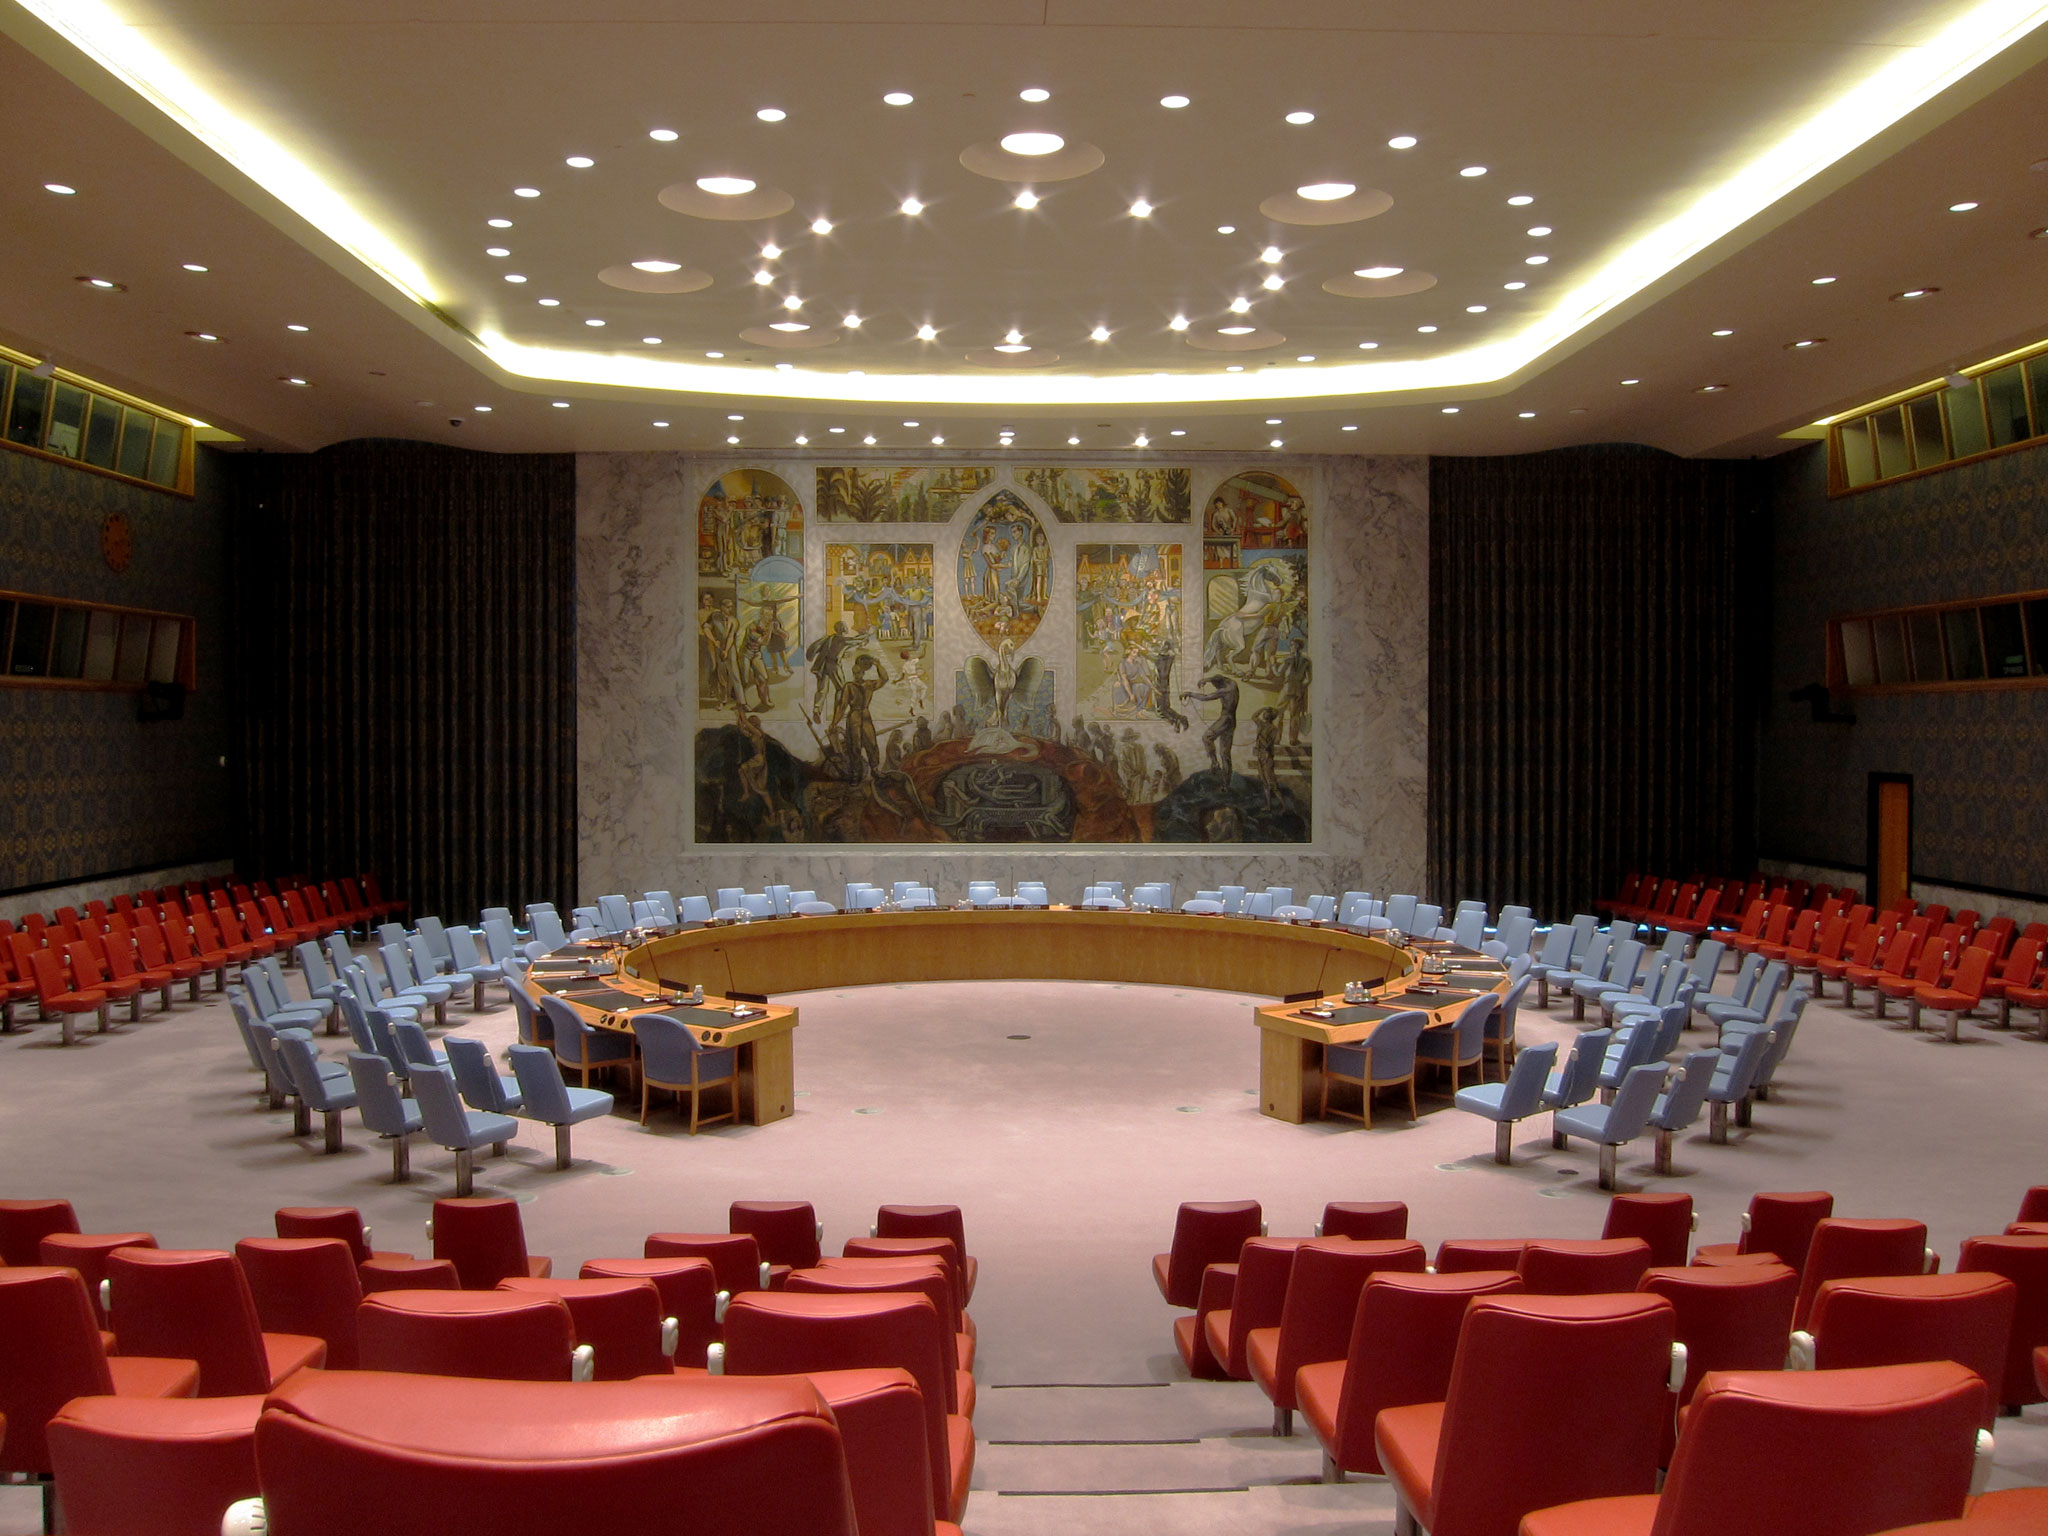 UN-Sicherheitsrat_-_UN_Security_Council_R